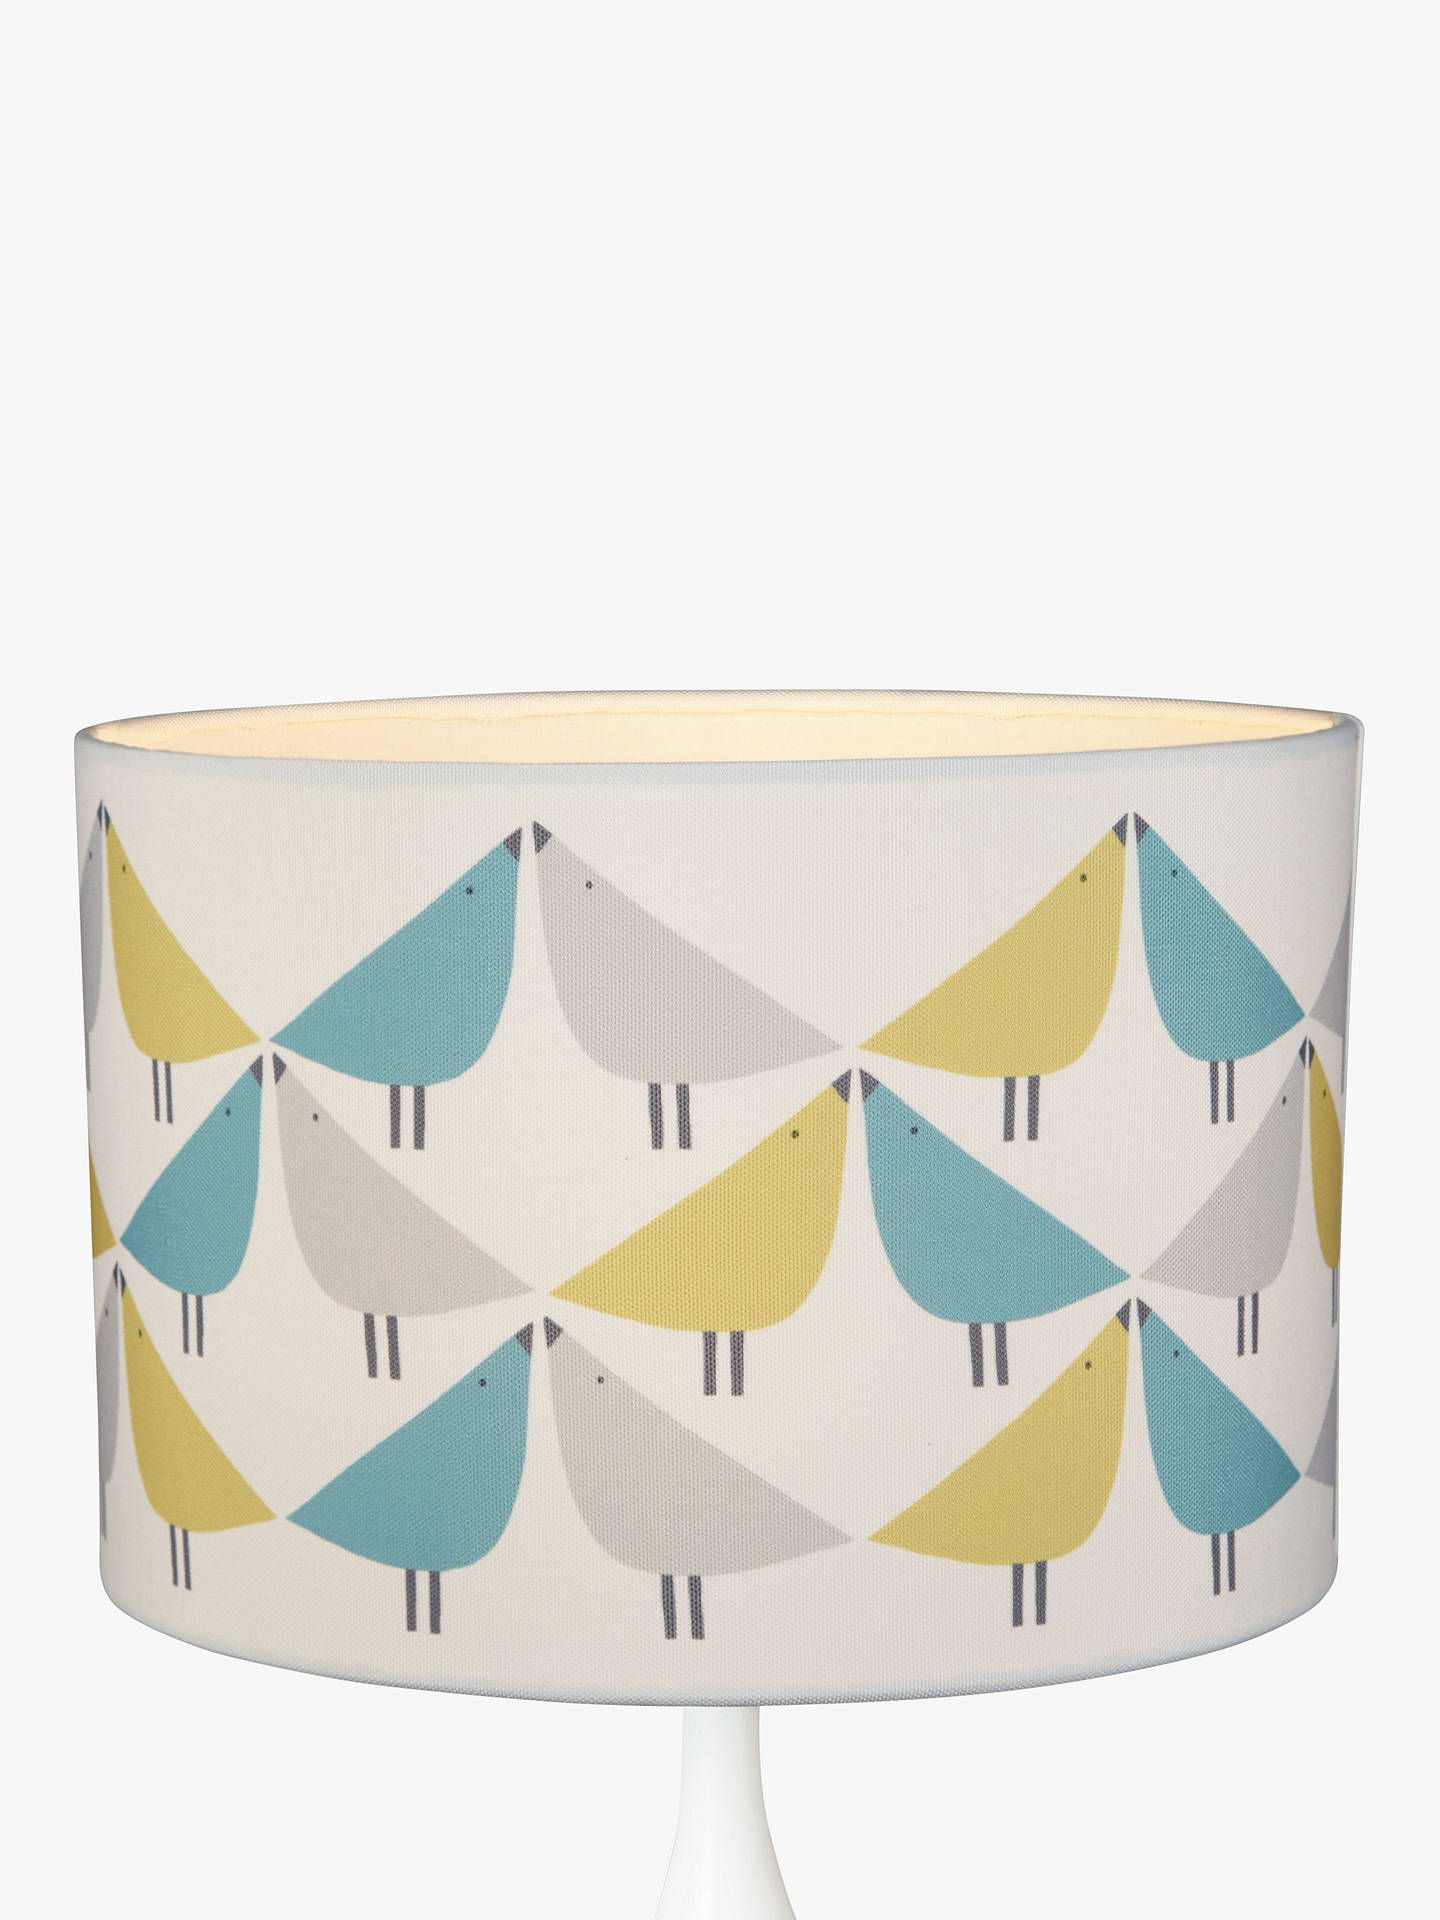 BuyScion Lintu Lampshade, Green/Blue, Dia.30cm Online at johnlewis.com